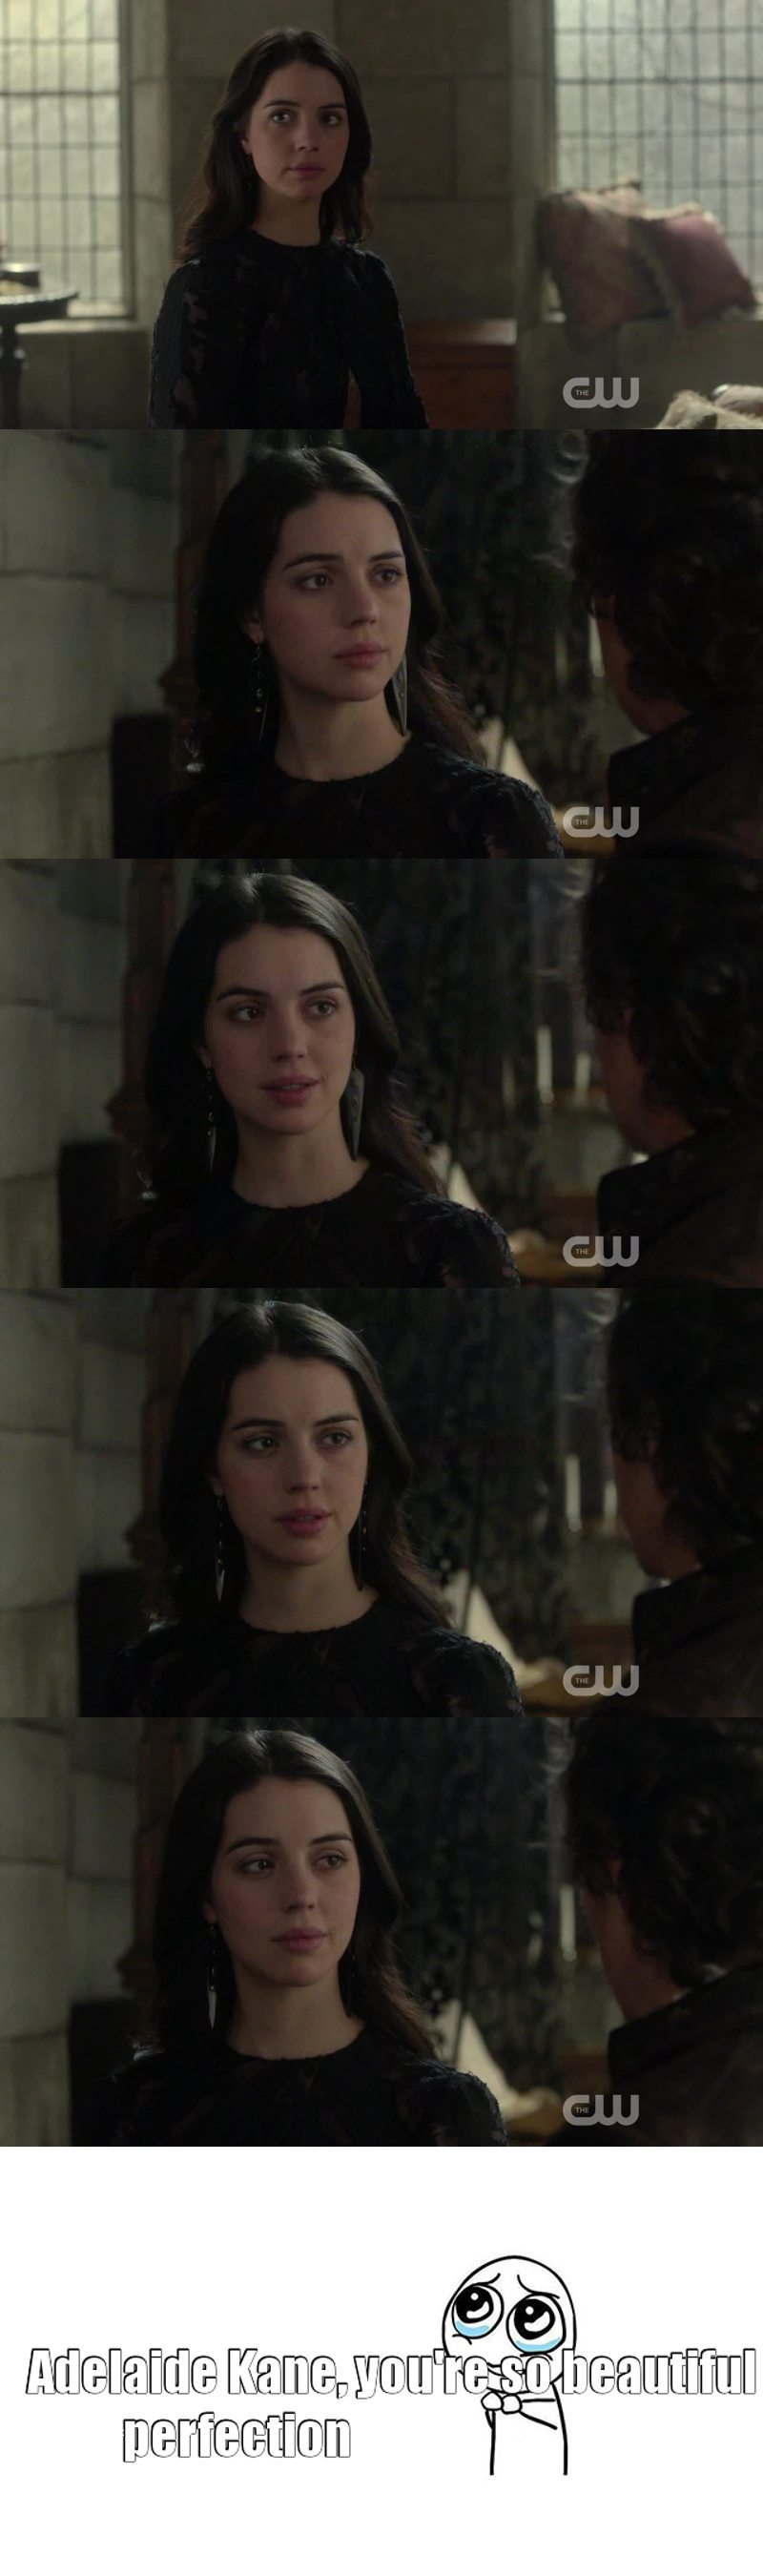 Adelaide Kane, you're so beautiful ❤